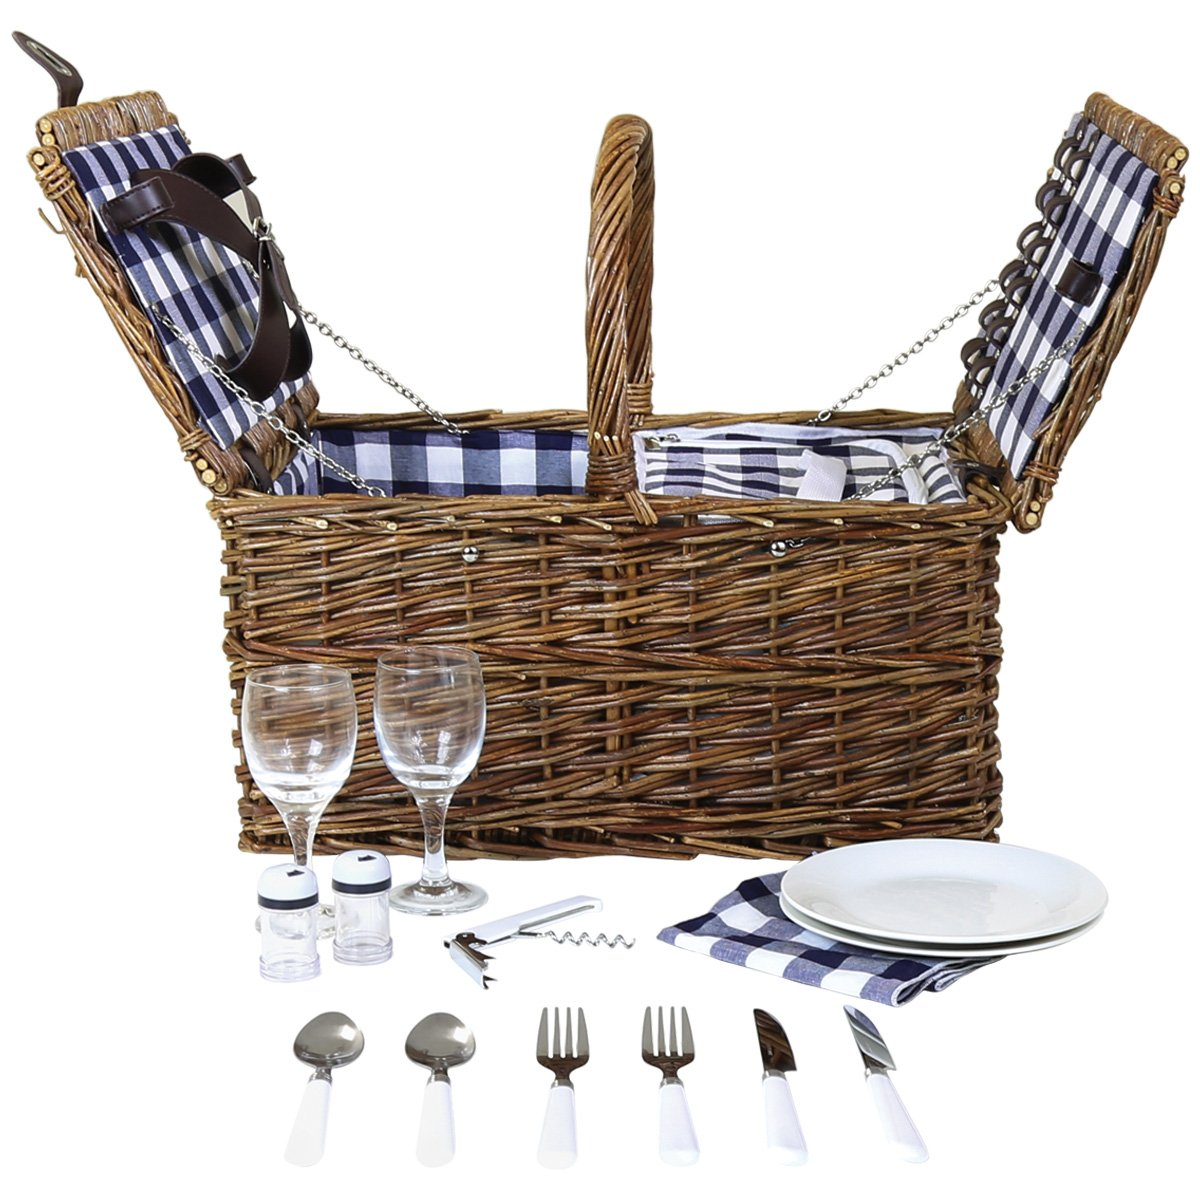 Charles Bentley 2 Person Willow Wicker Picnic Basket Set Including Cutlery, Plates, Glasses, Cool Bag, Corkscrew, Salt & Pepper Pots, Napkins